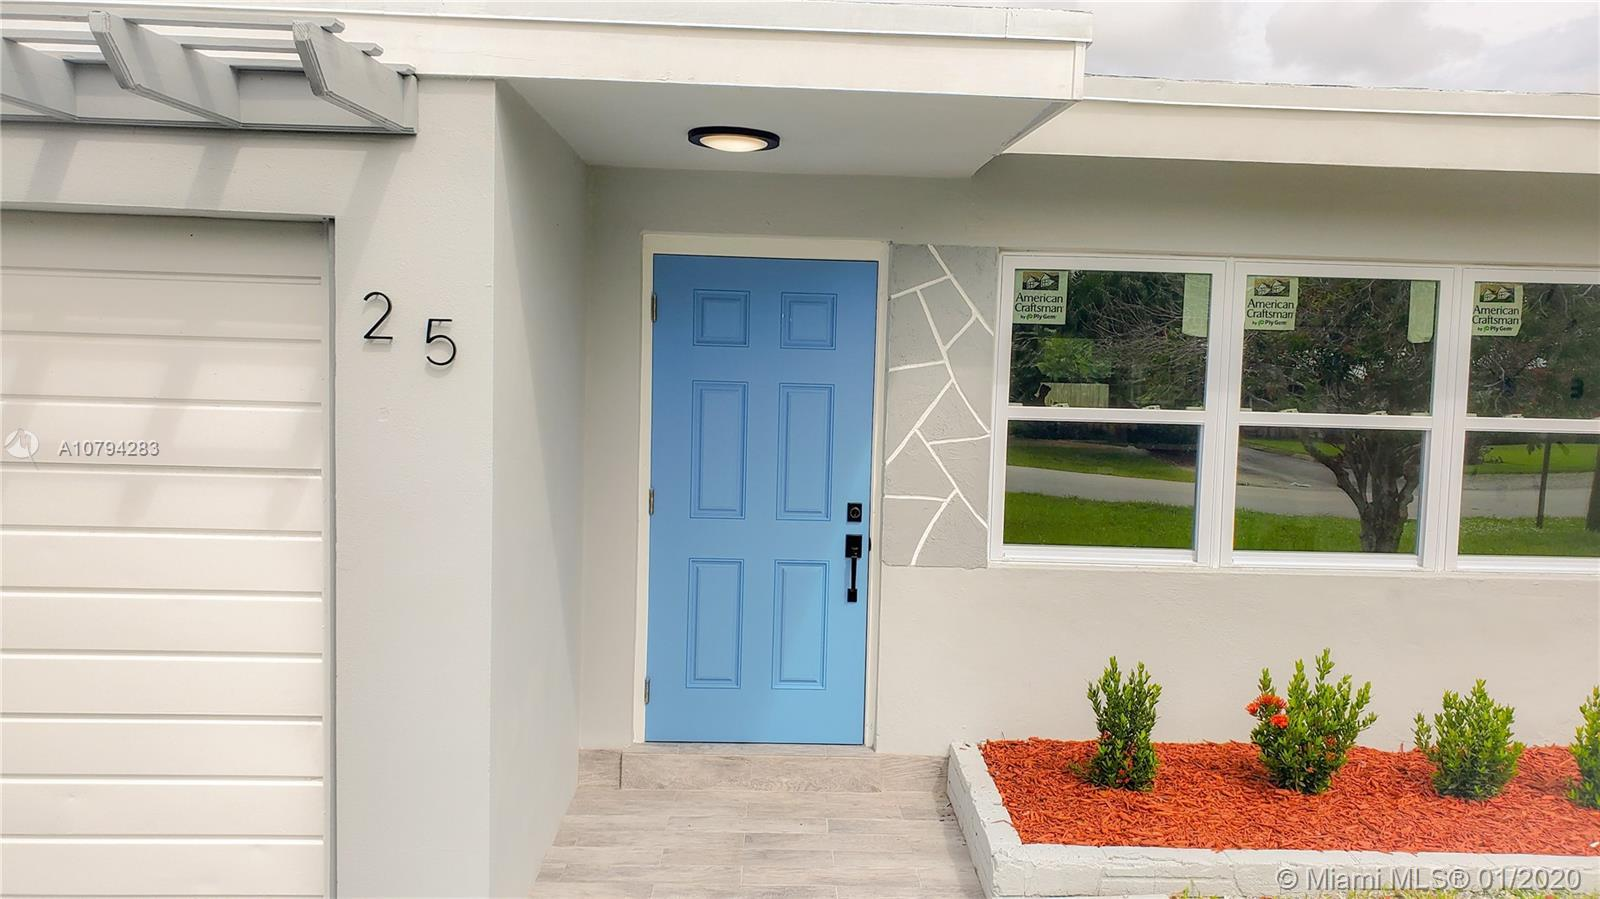 Beautifully renovated home at Wilton Manors, one of the most desirable municipalities in South Flori